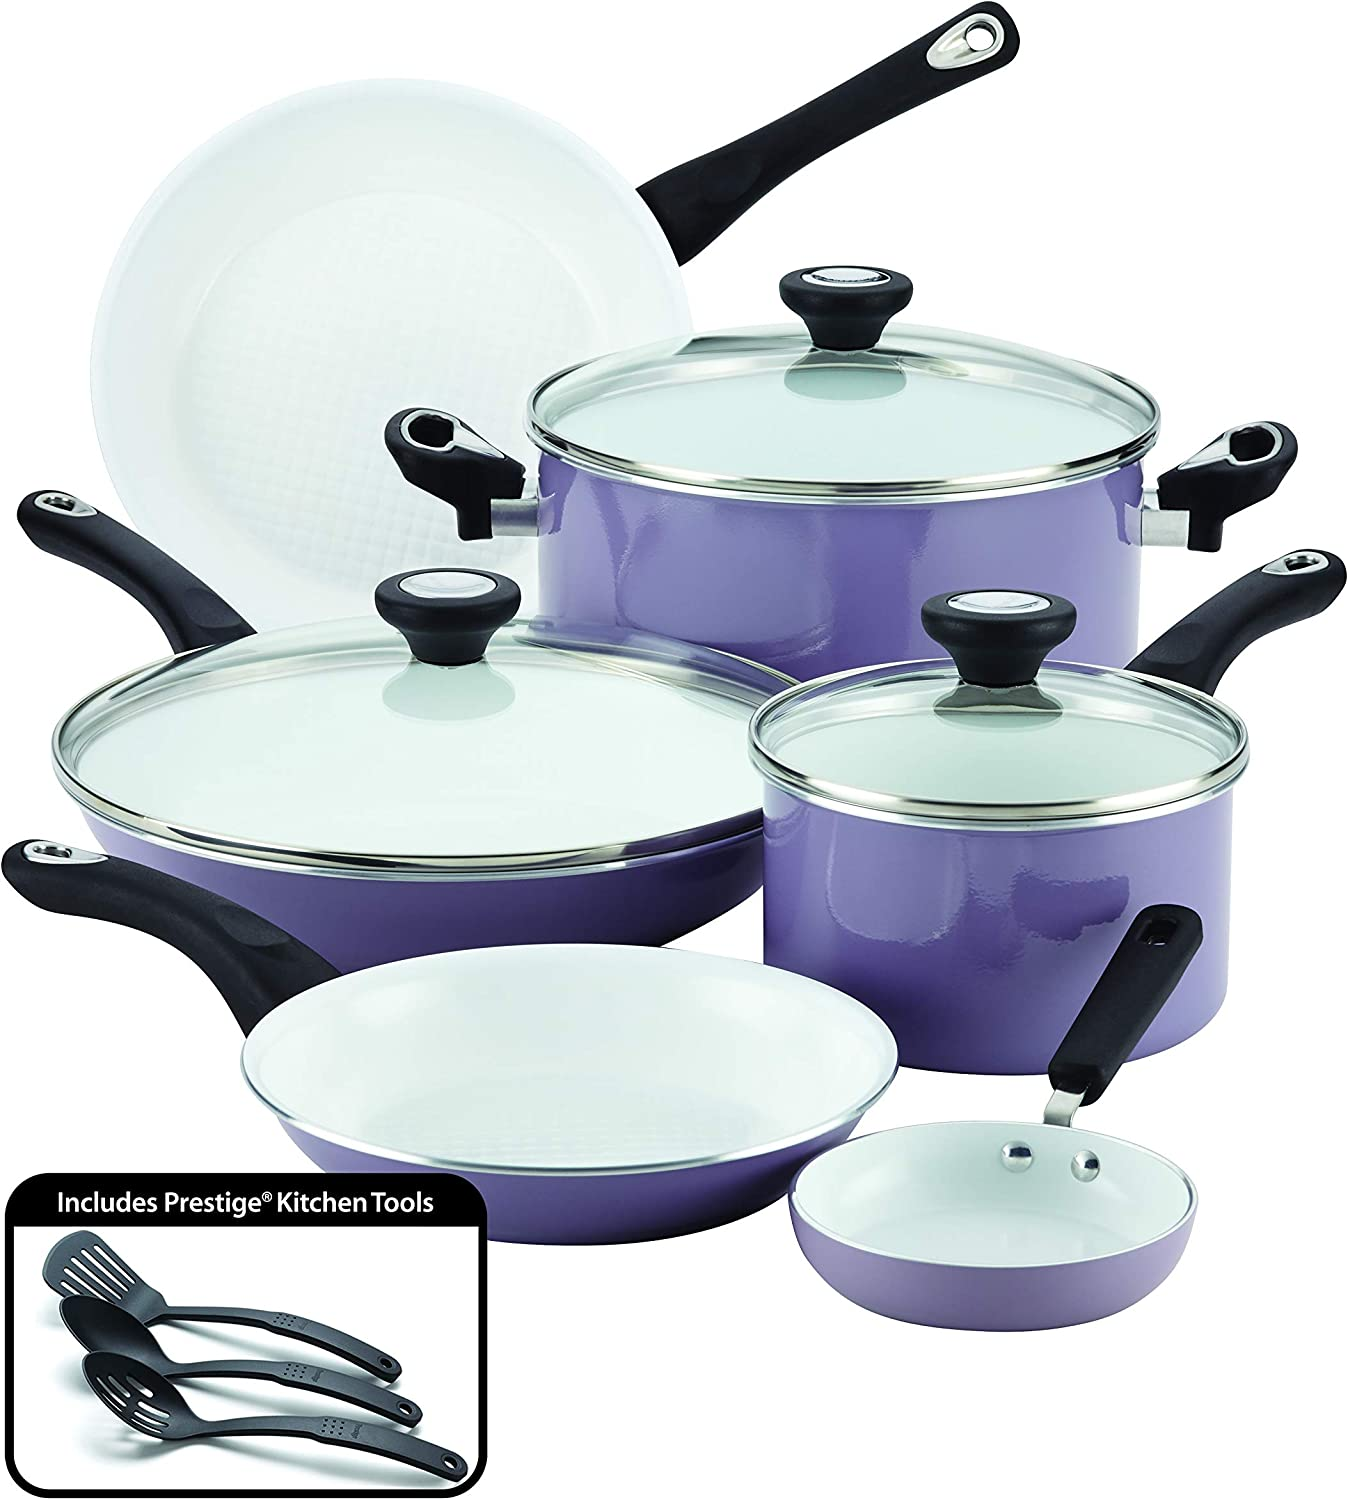 Farberware PURECOOK Ceramic Nonstick Cookware 12-Piece Pots and Pans Cookware Set, Lavender